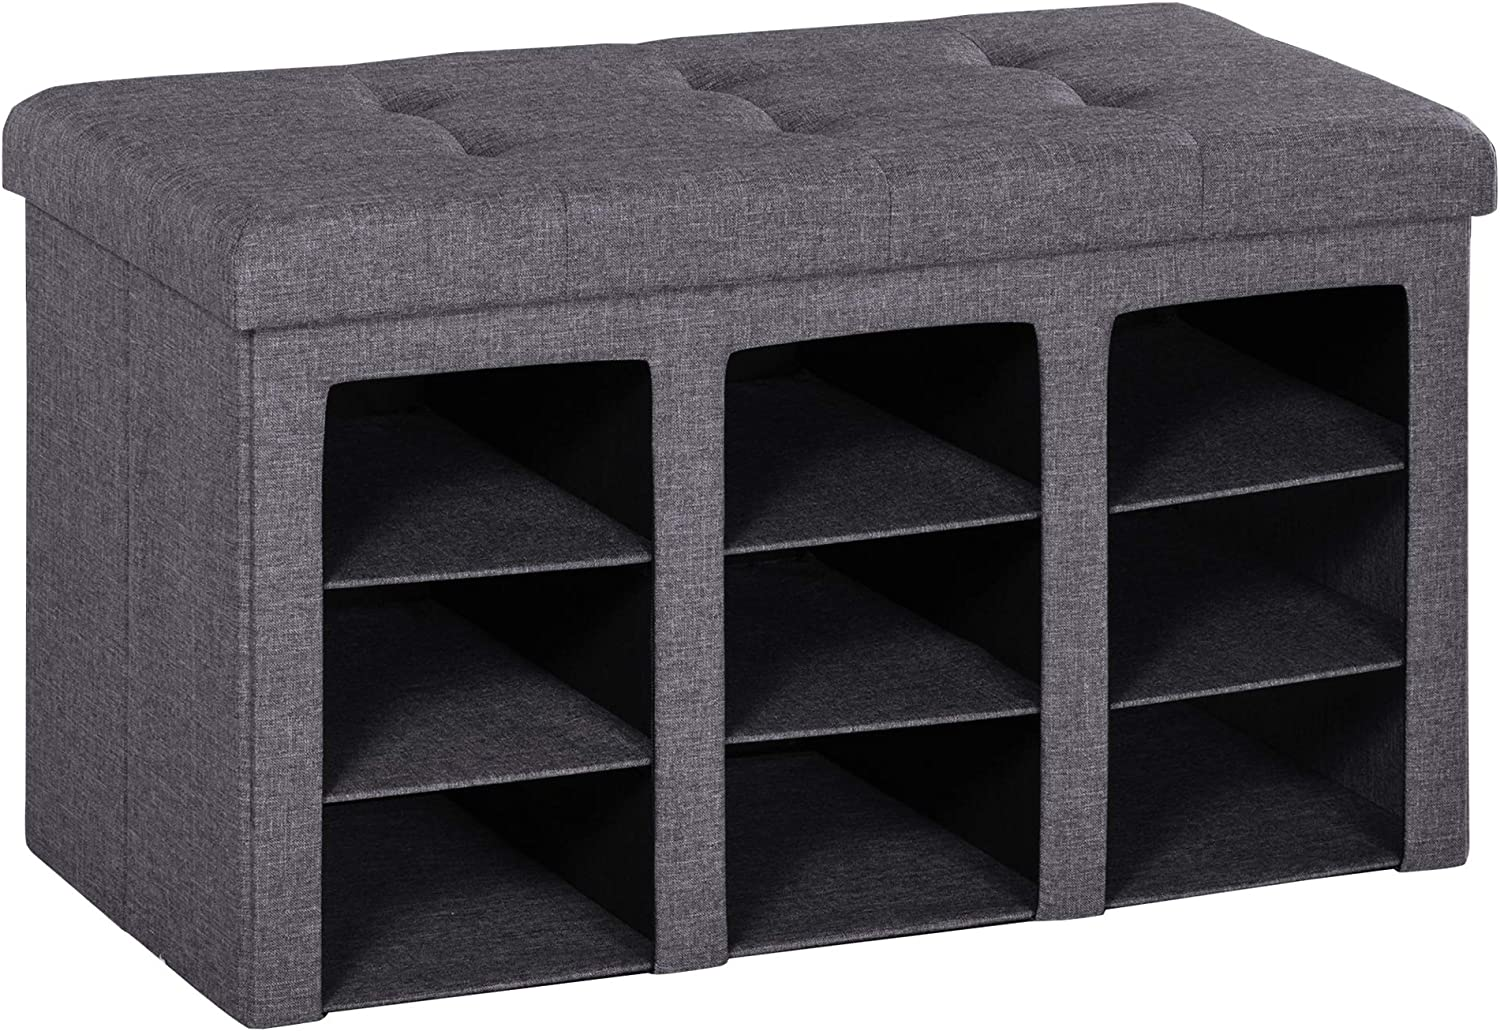 HOMCOM Modern Folding Storage Cabinet Ottoman Bench Padded Seat Foot Rest for Bedroom & Hallway with 9 Cubes, Grey